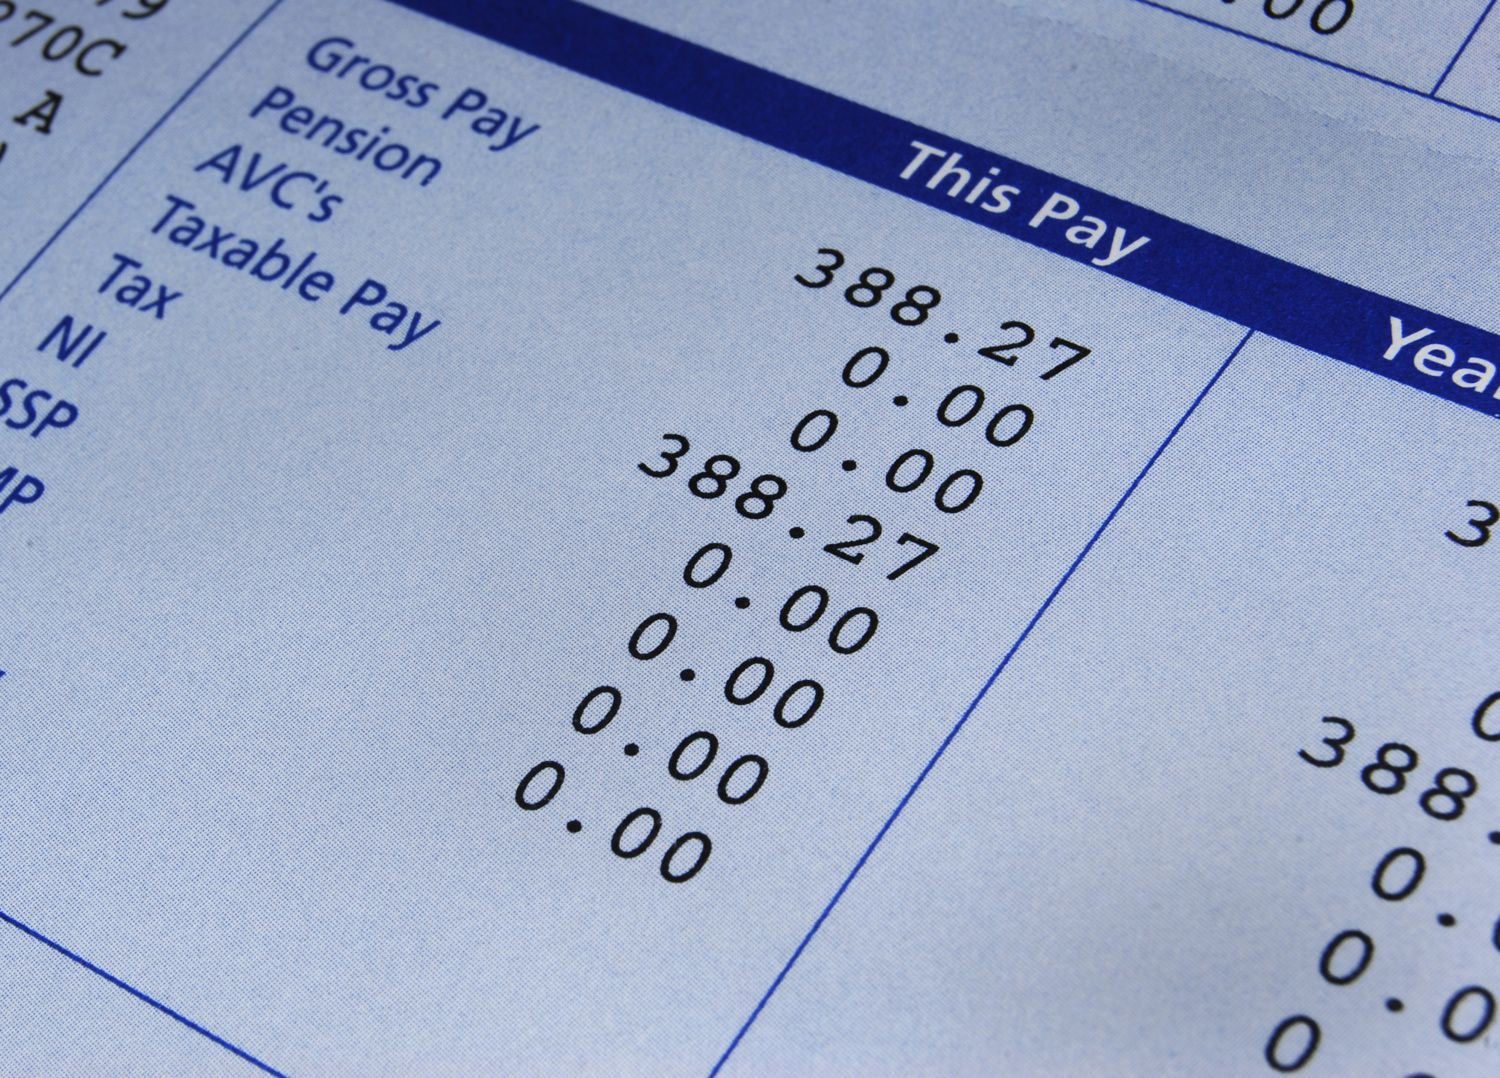 Us bank hr view paycheck - Find Ways To Make Your Paycheck Do More